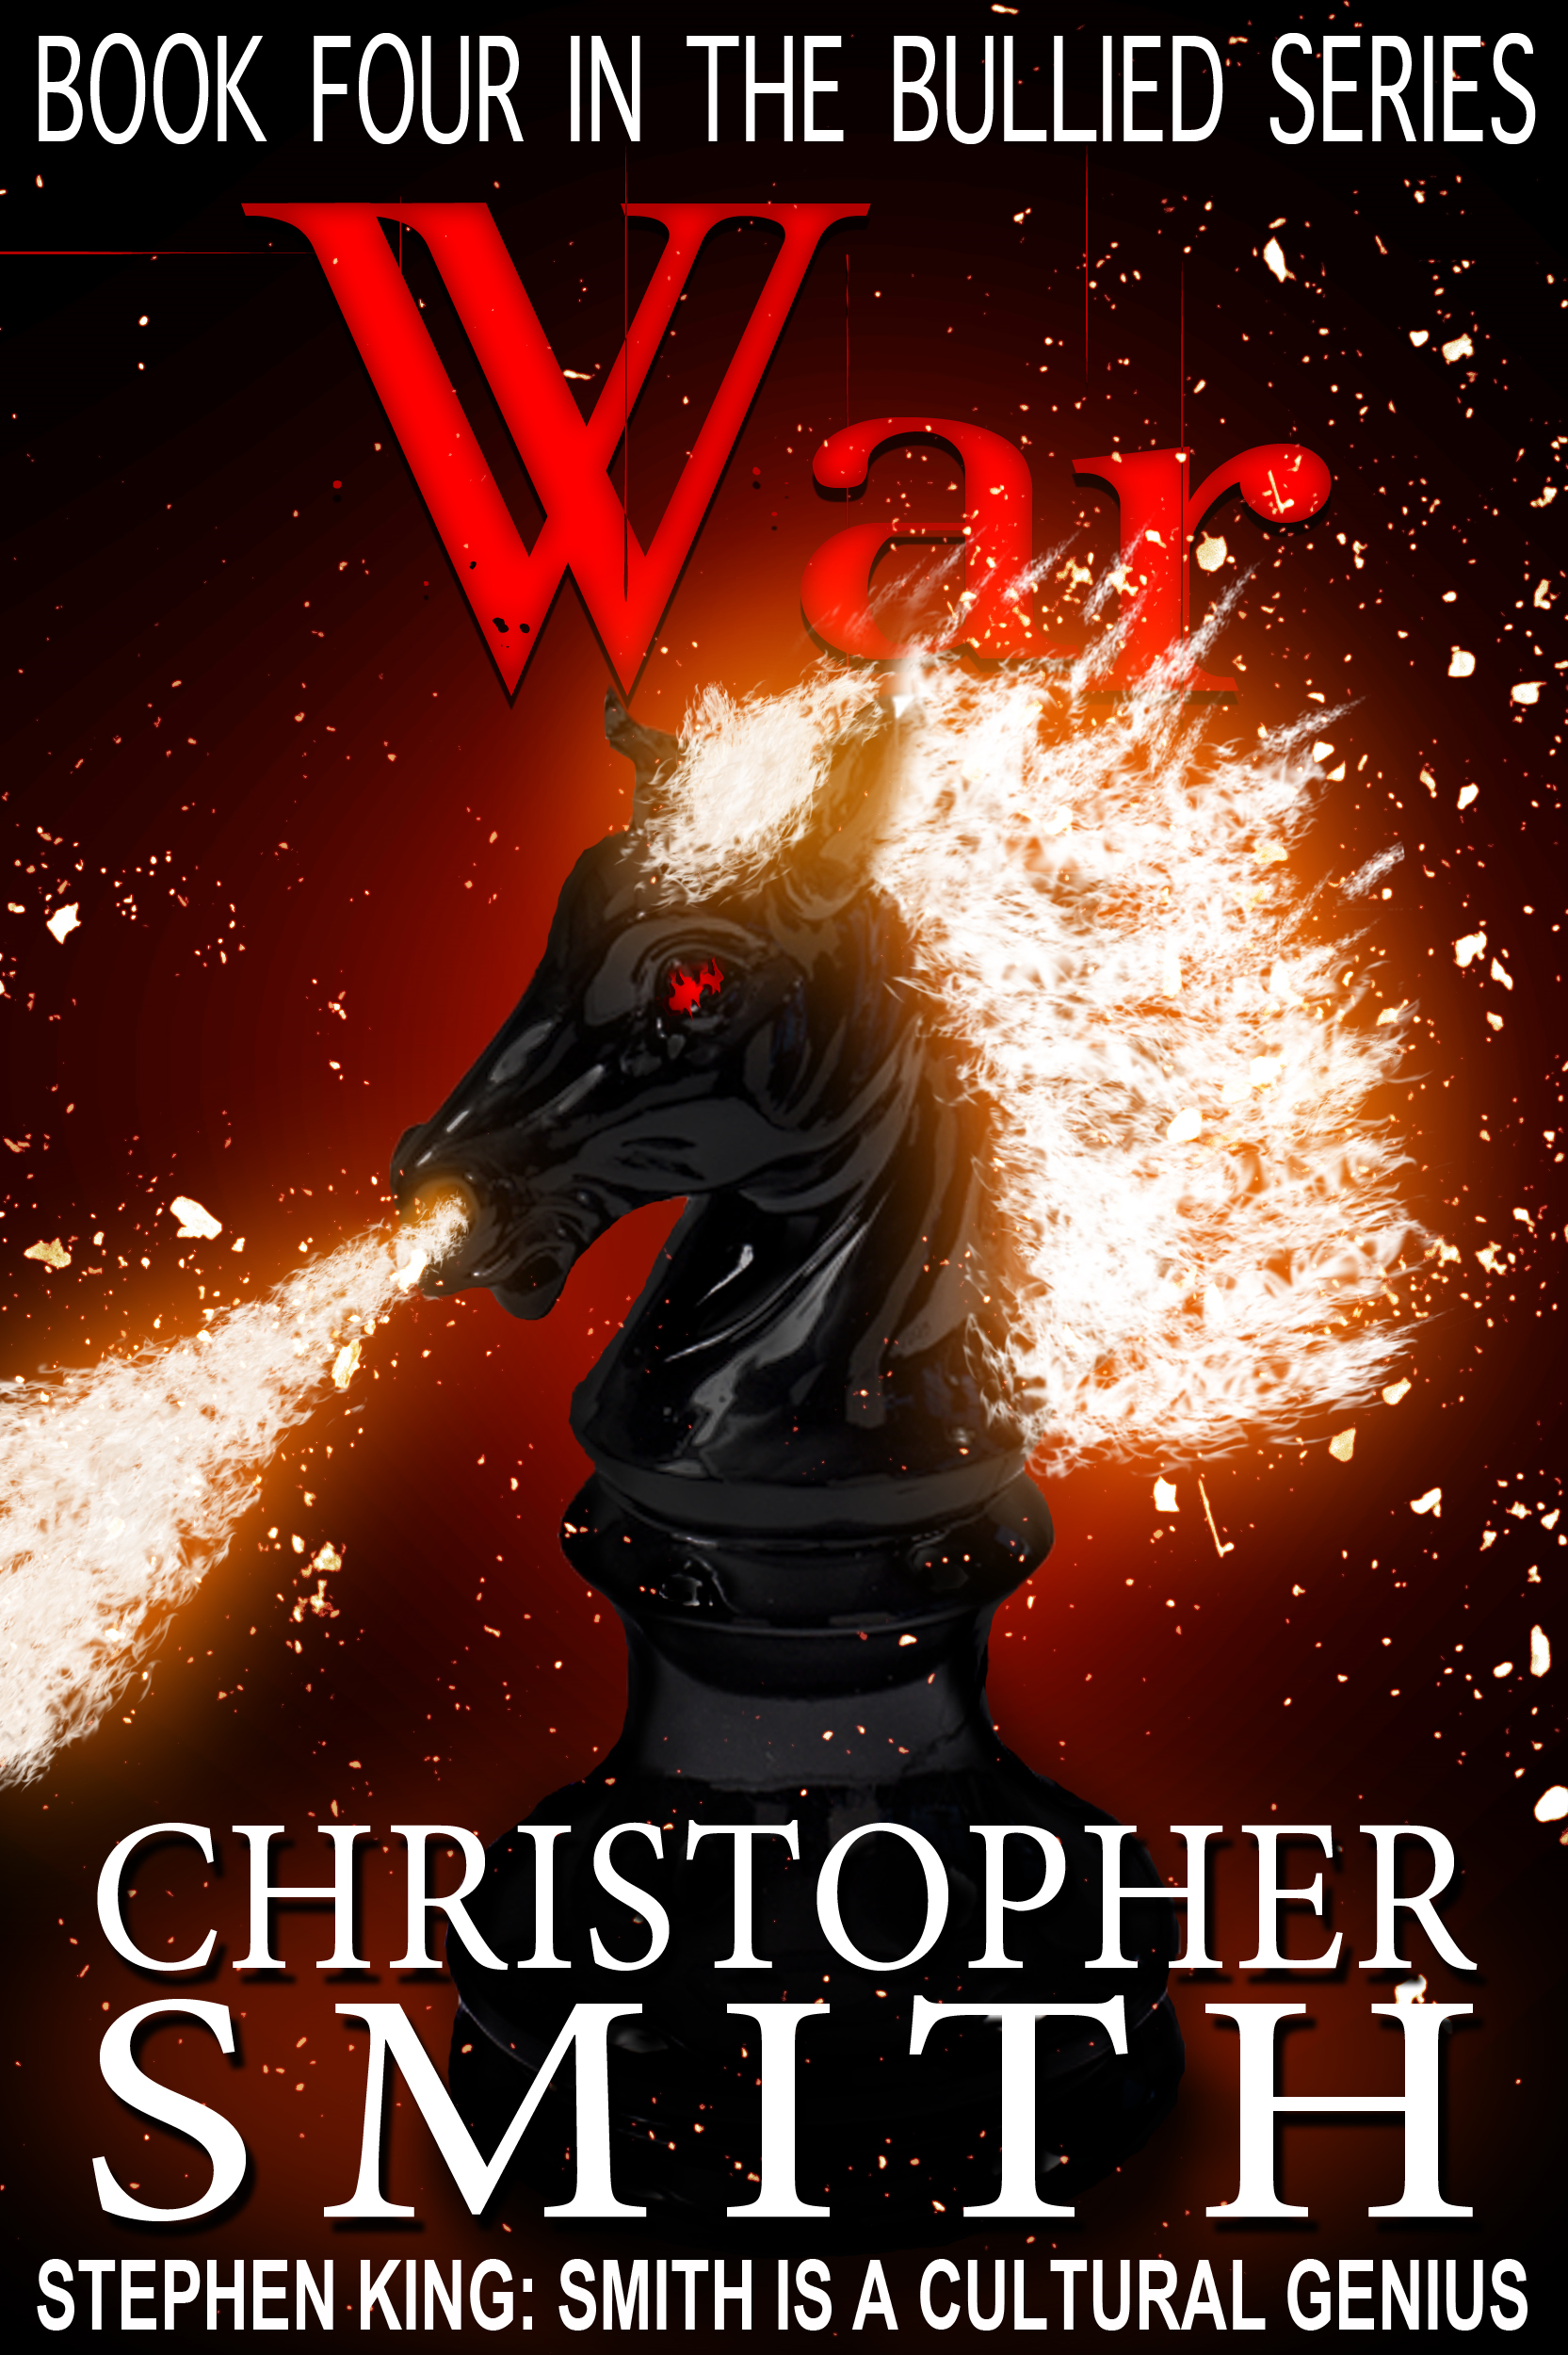 War (Book Four in the Bullied Series)